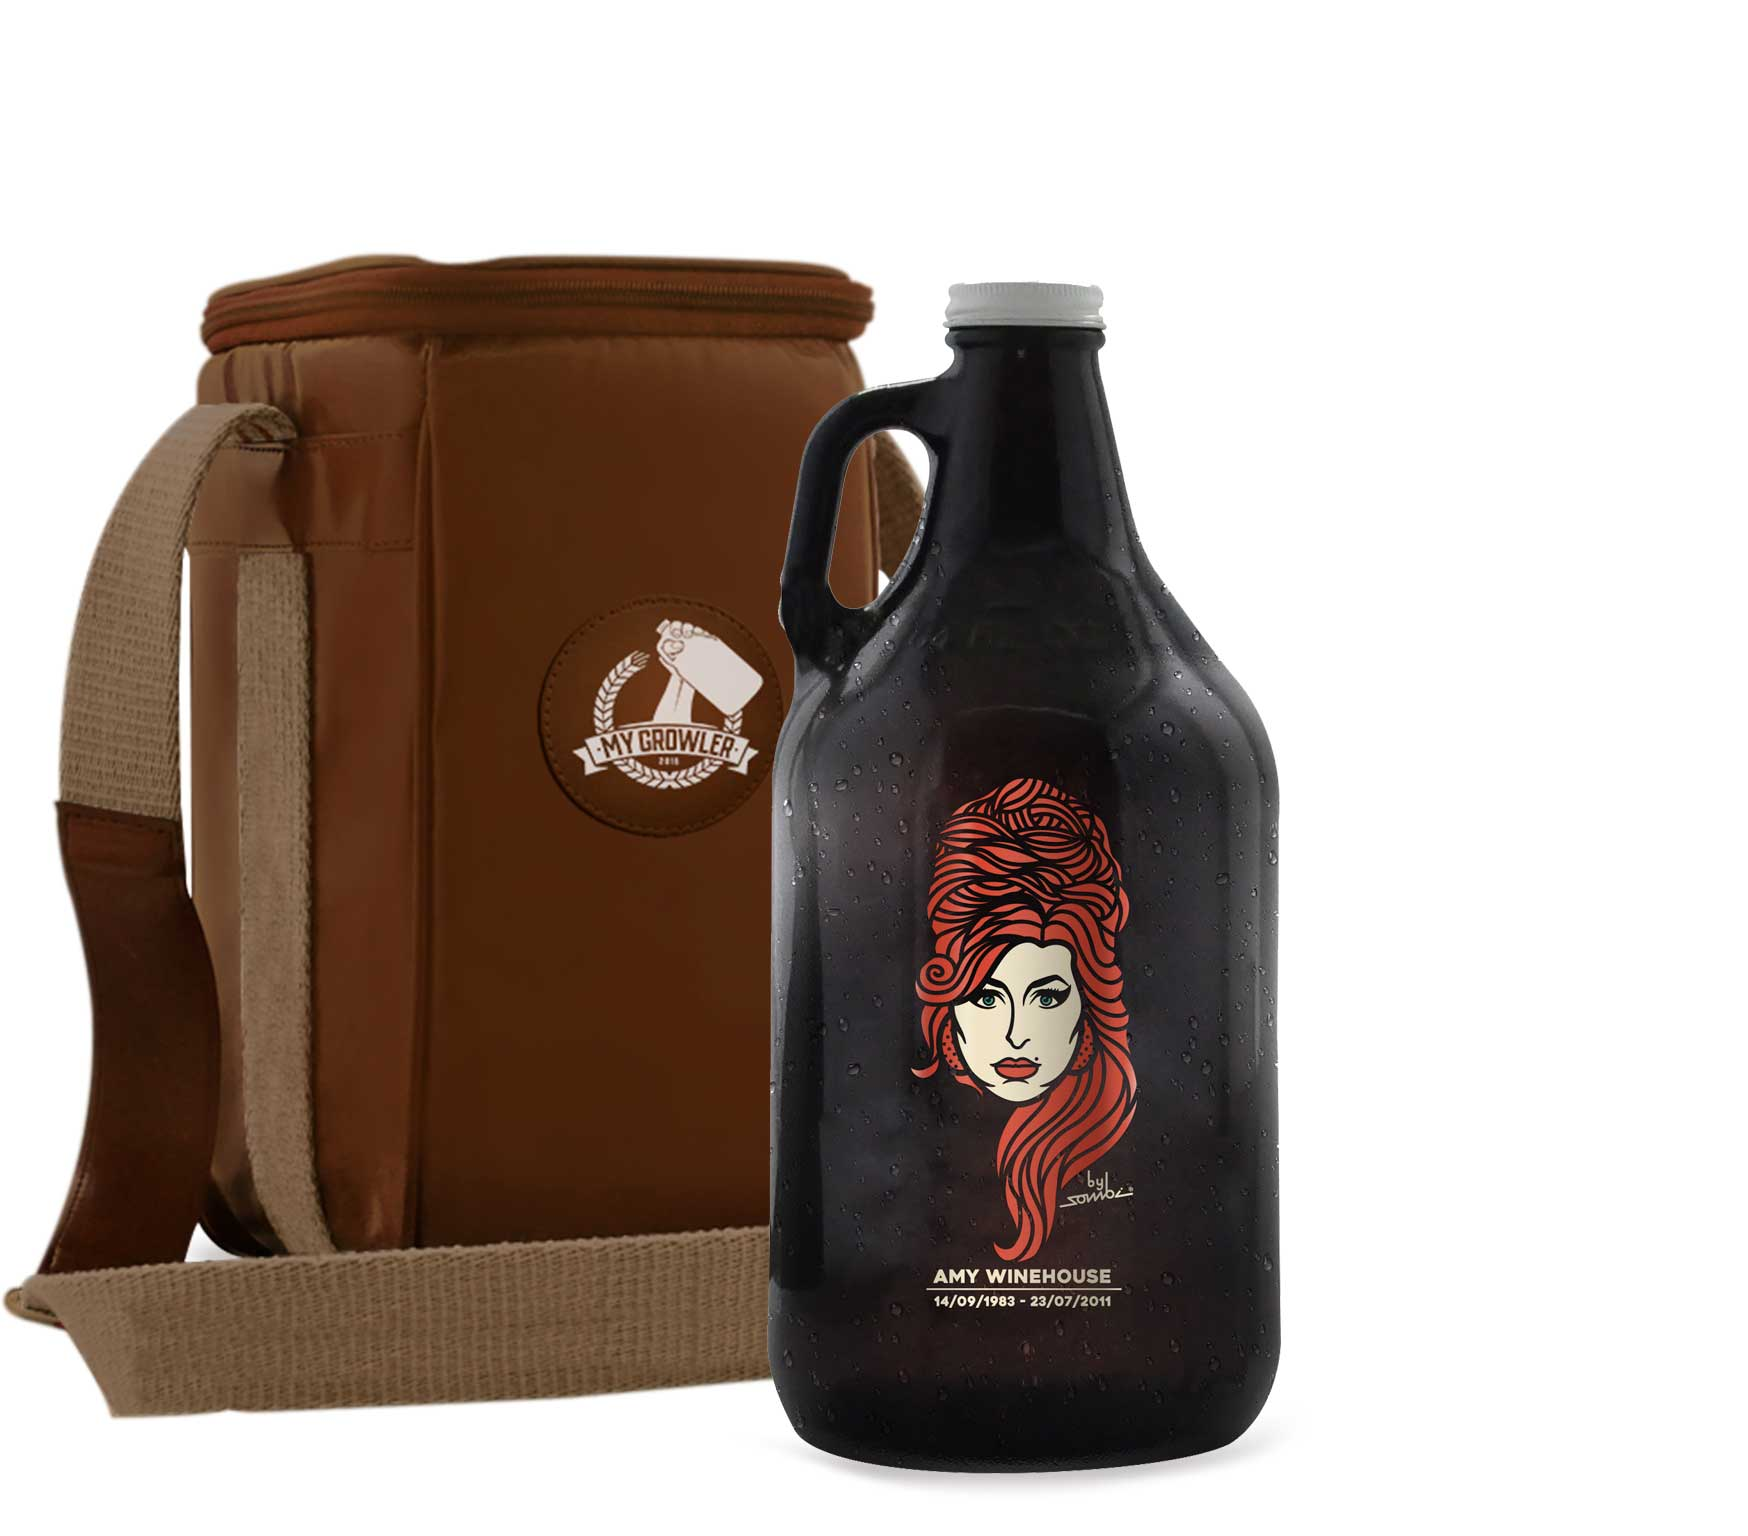 Growler Americano 1,89l - Amy Winehouse + Growler Bag Travel Bege